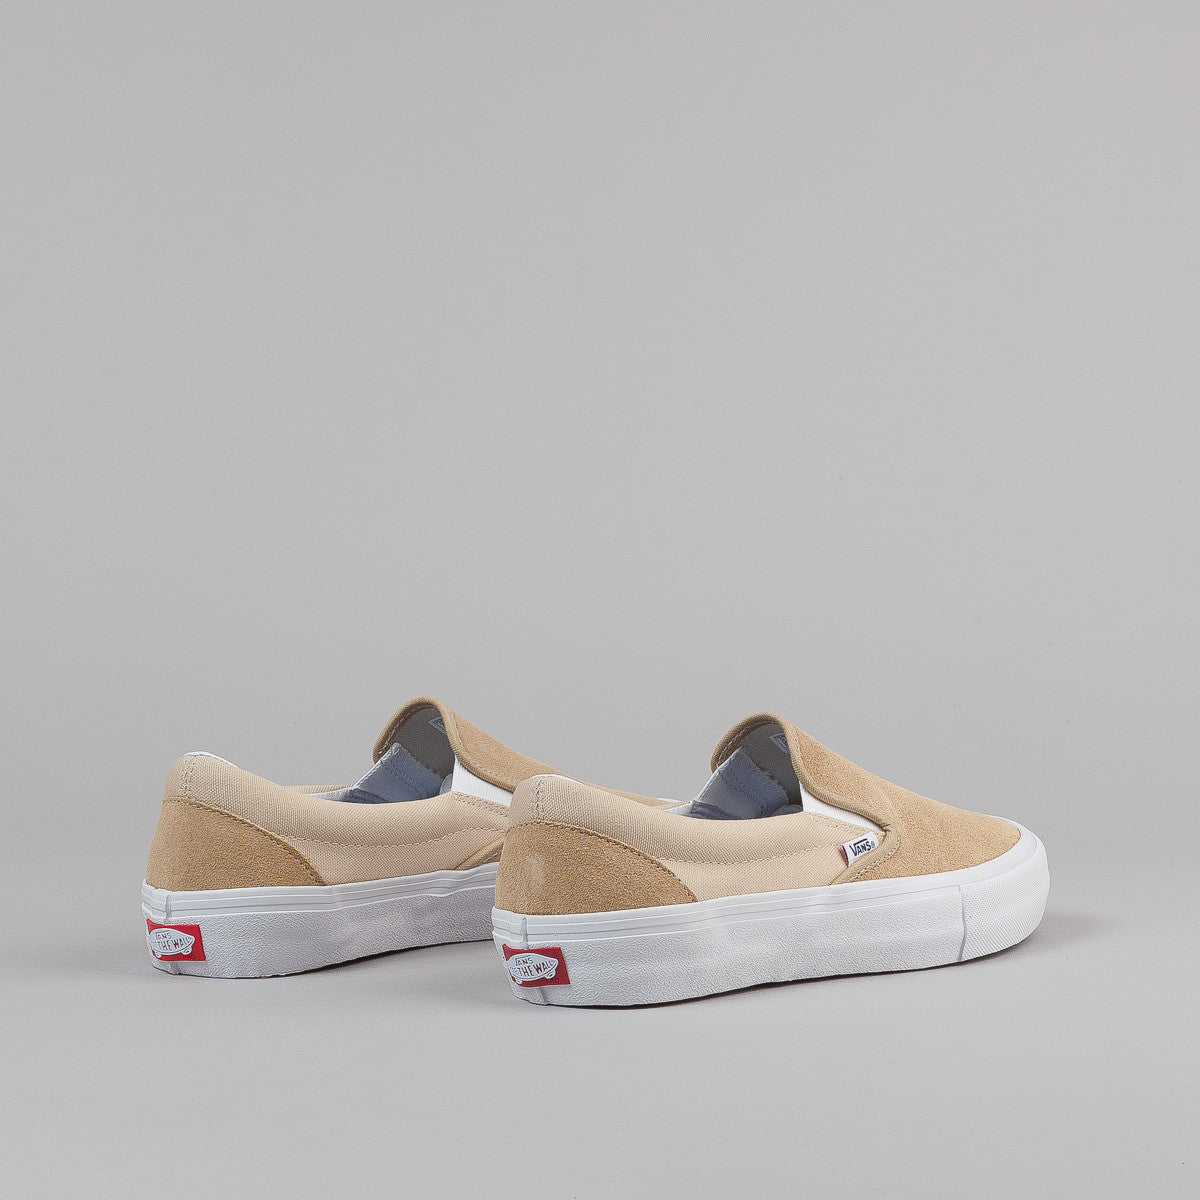 Vans Slip On Pro Shoes - Sand / White